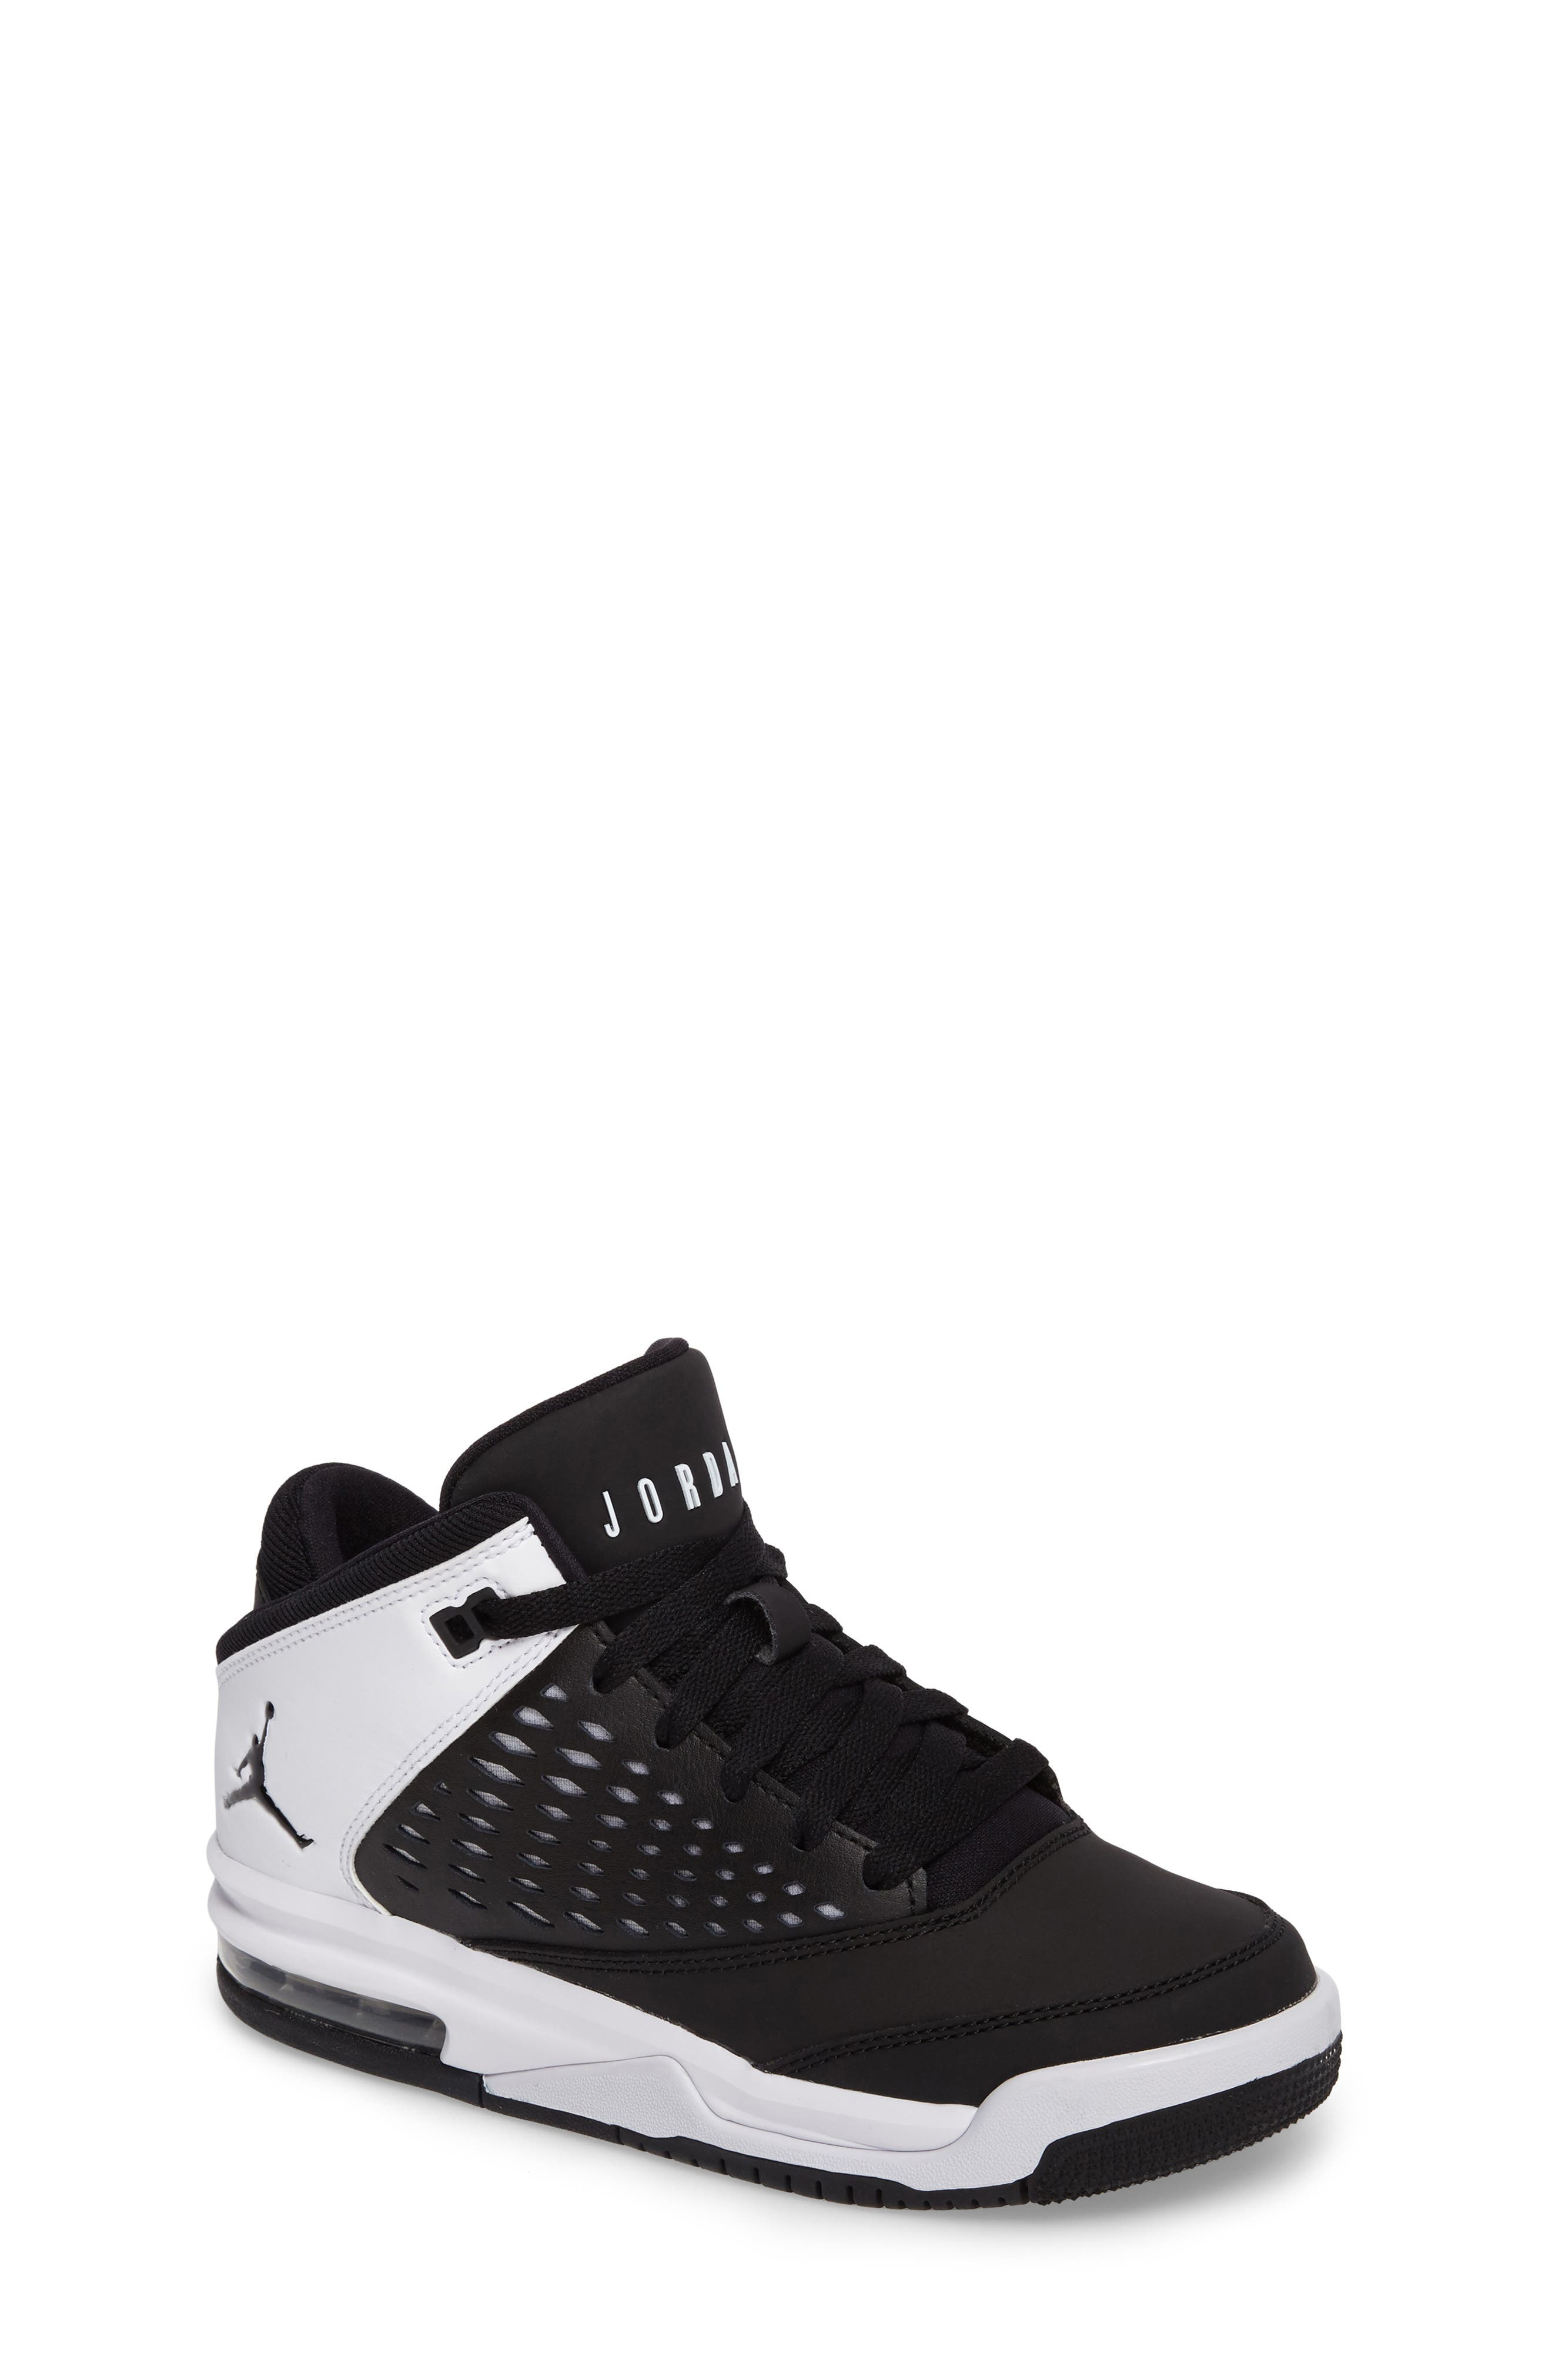 Nike Jordan Flight Origin Sneaker (Big Kid)